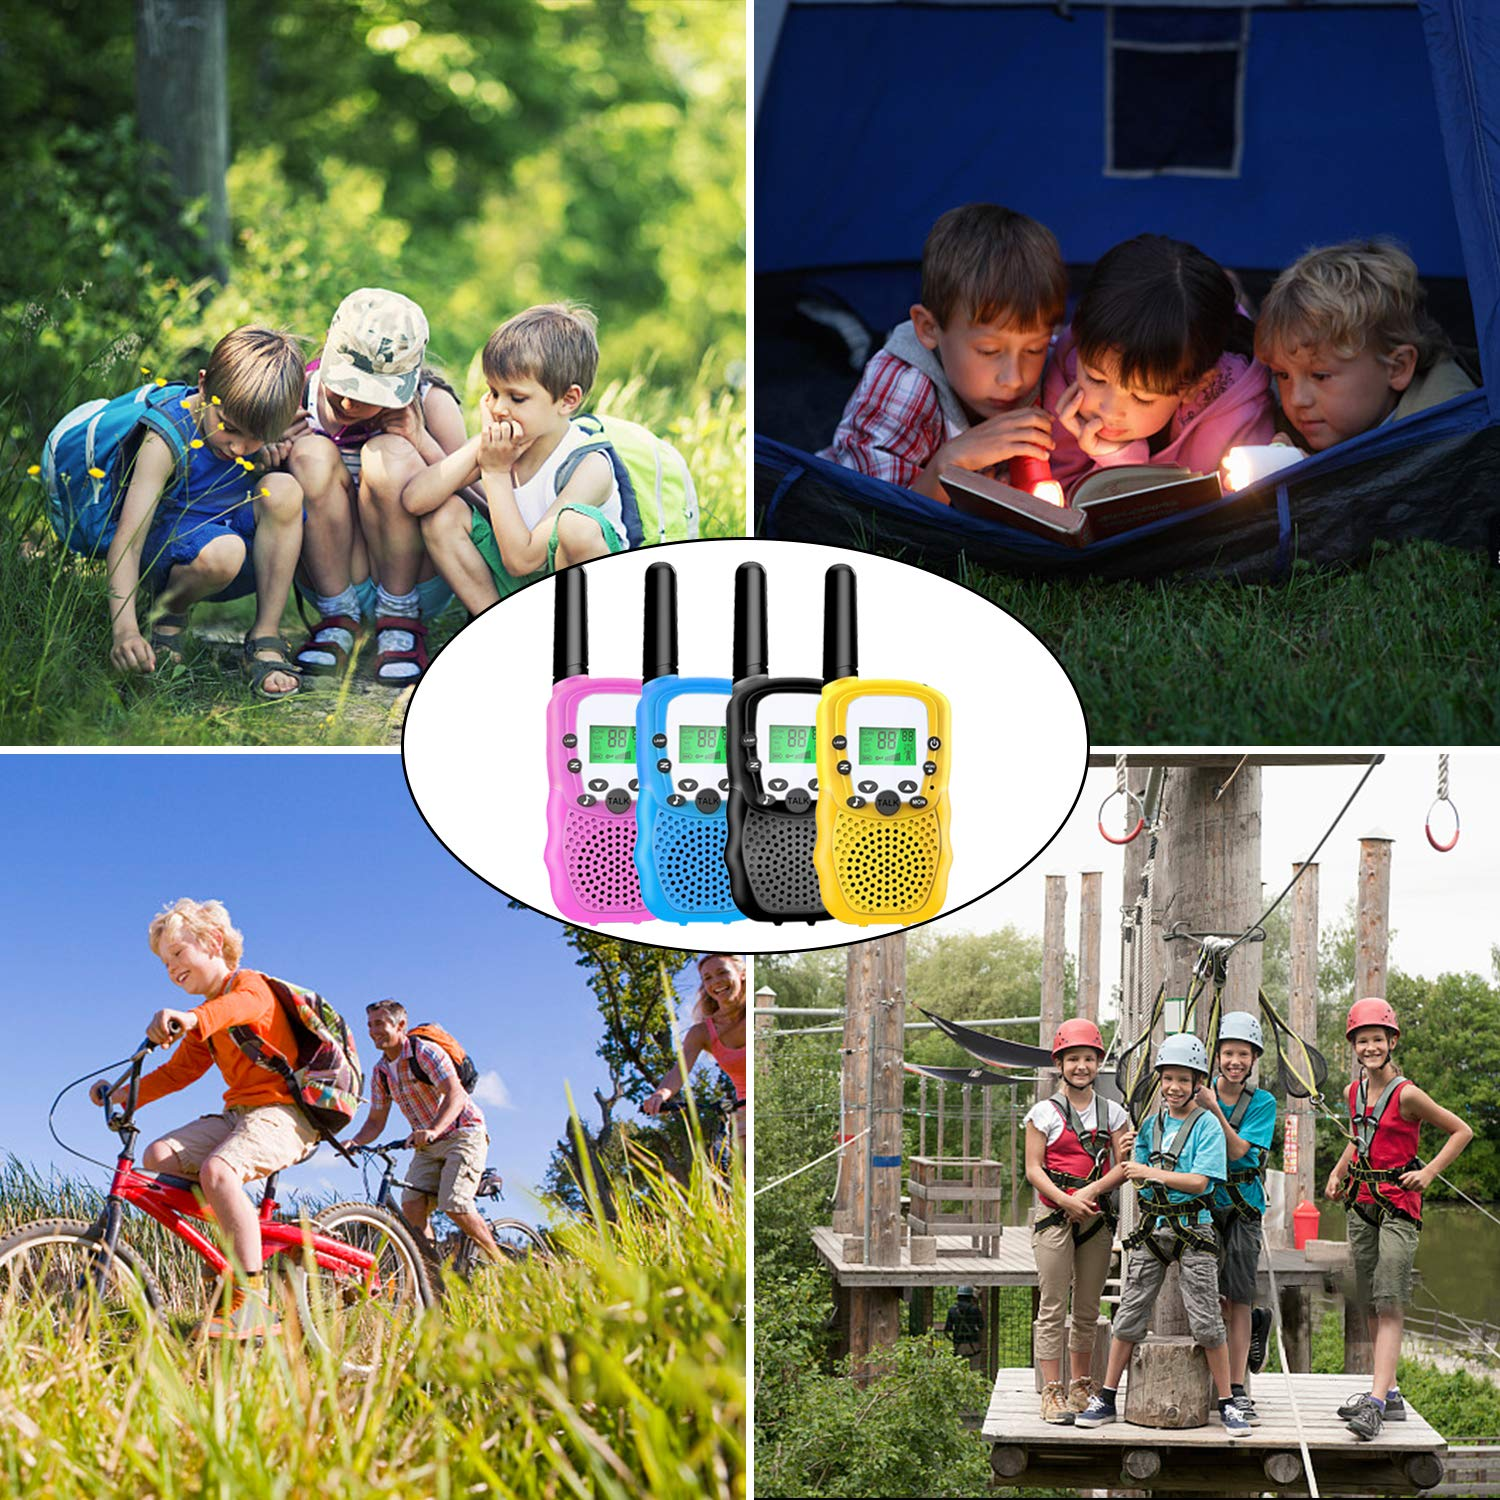 4 Pack Kids Walkie Talkies - 22 Channels 2 Way Radio Long Range Kids Toys, Handheld Child Walkie Talkies for Boys Girls with Flashlight for Sport Outdoor Camping Hiking Prime Electronic Toy Gifts by AMENON (Image #7)